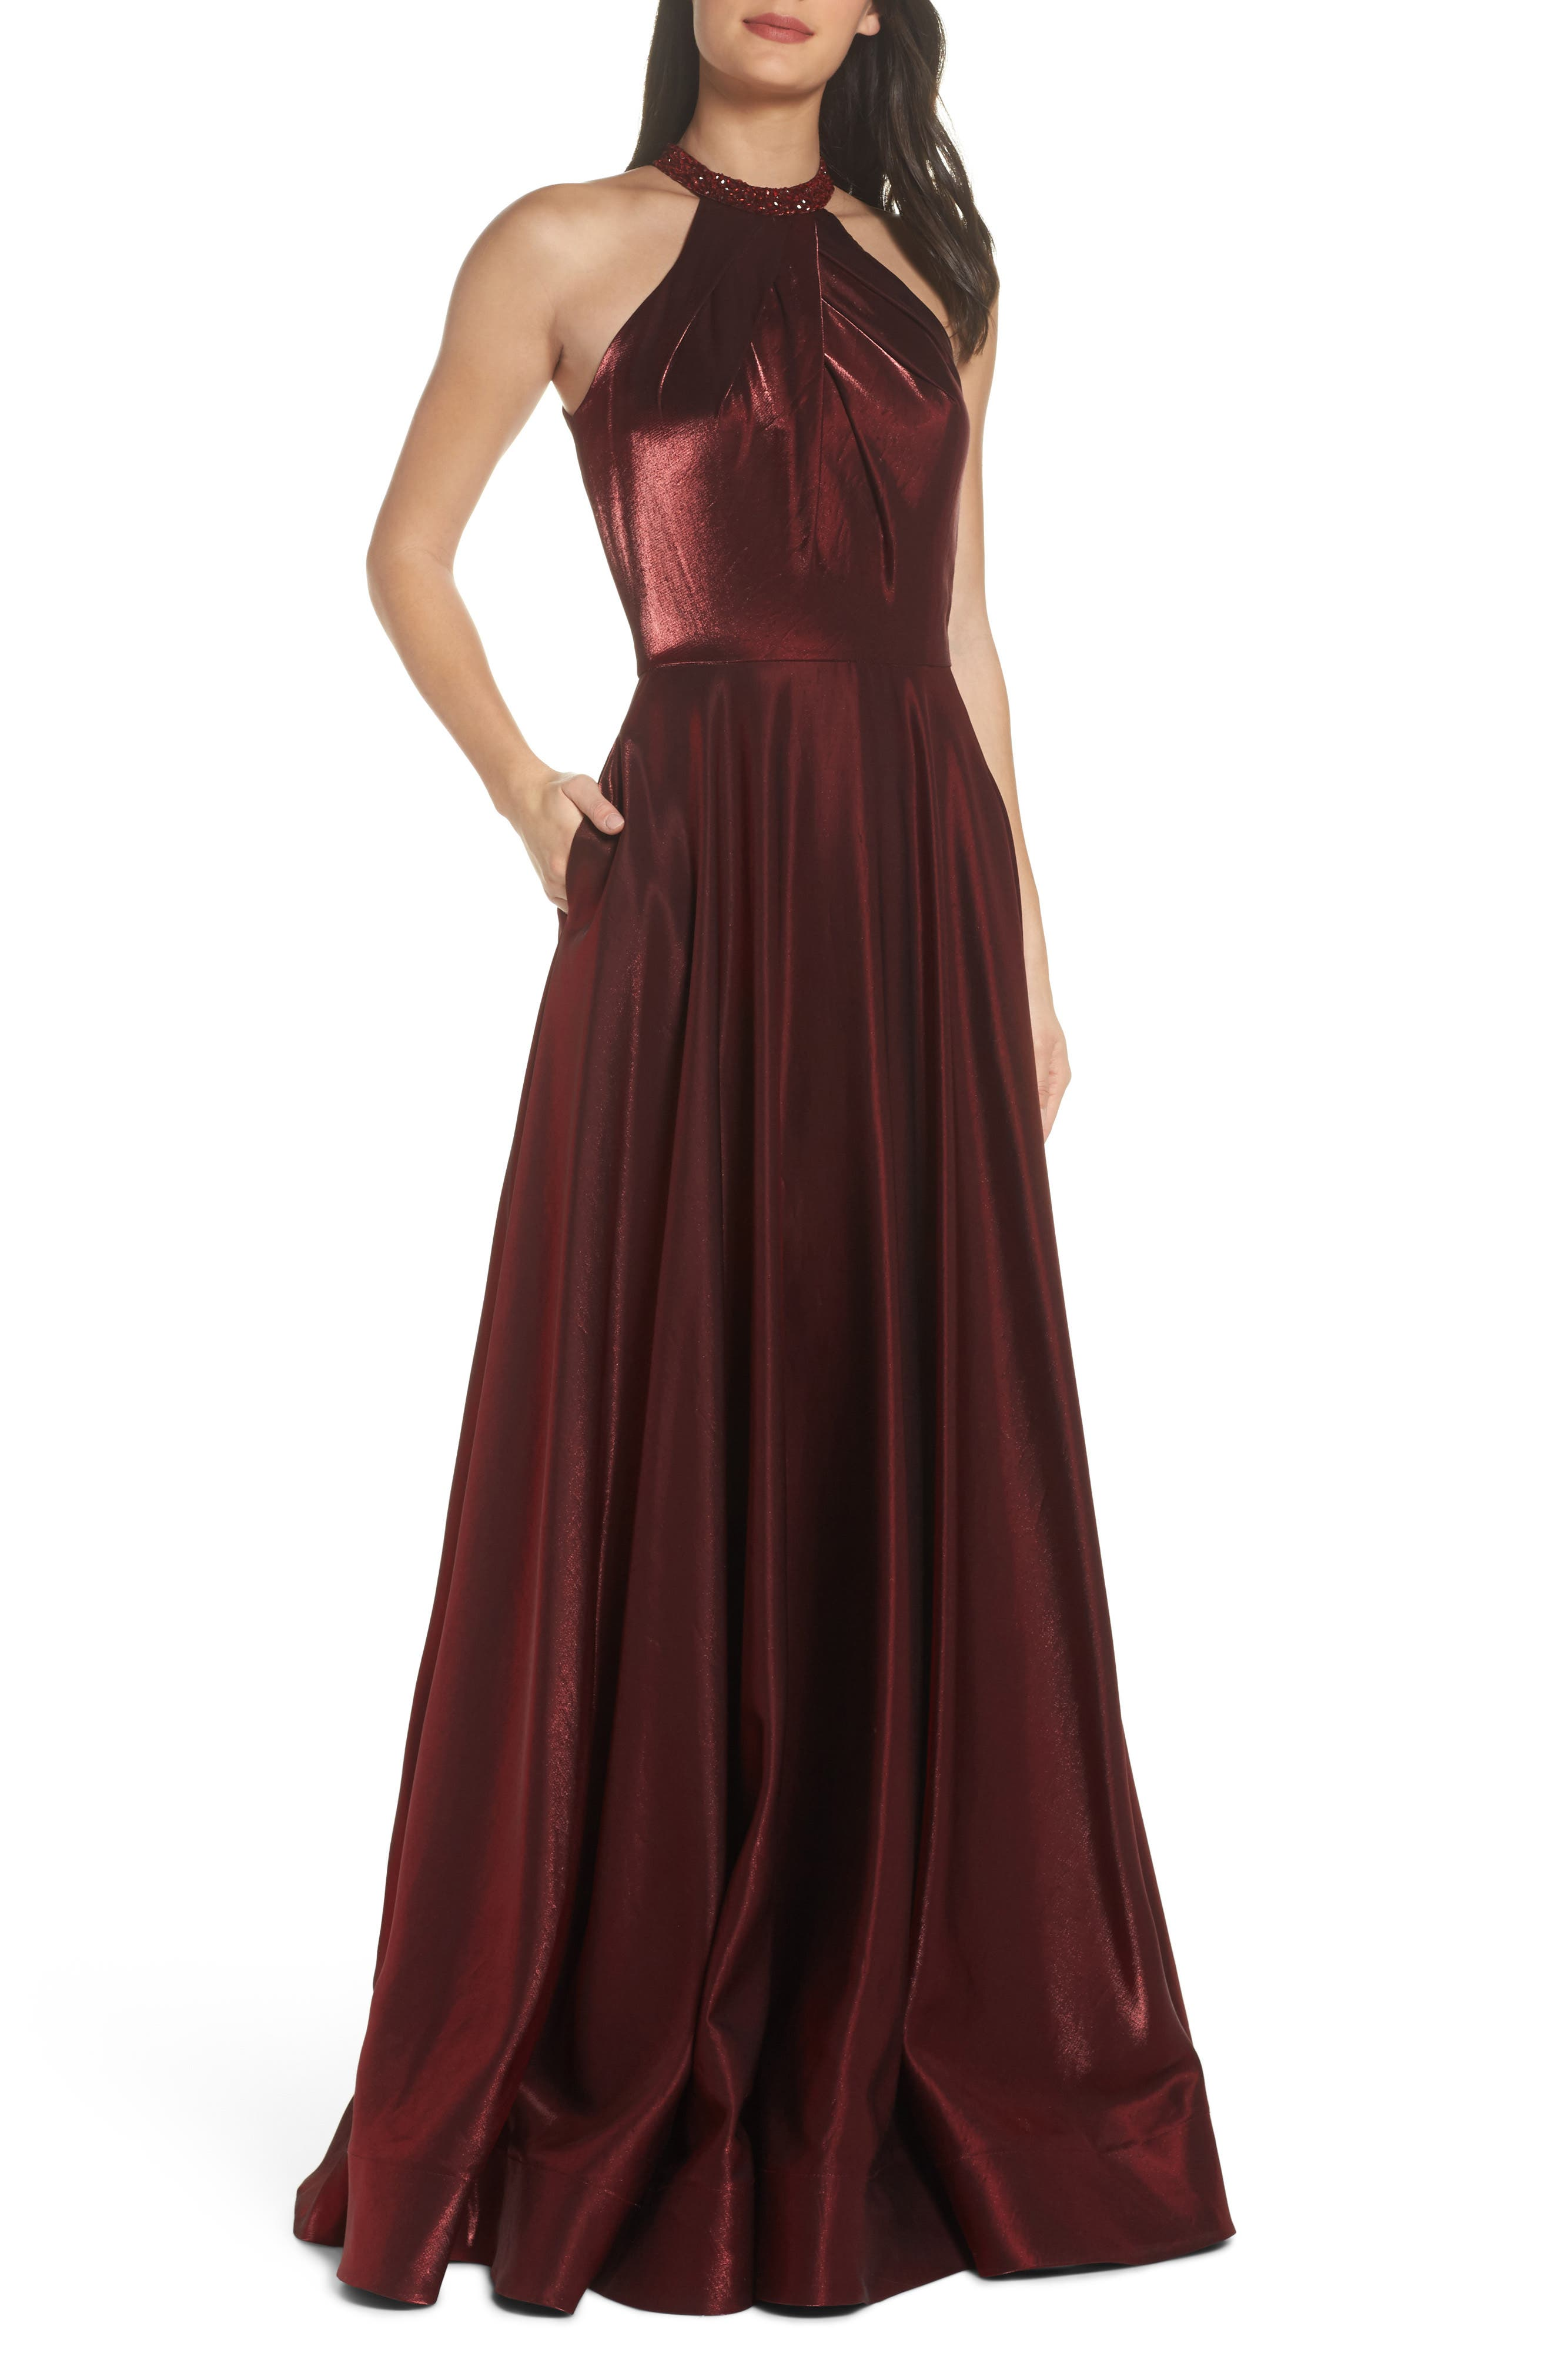 1930s Evening Dresses | Old Hollywood Dress Womens La Femme Beaded Halter Neck A-Line Gown Size 2 - Red $438.00 AT vintagedancer.com